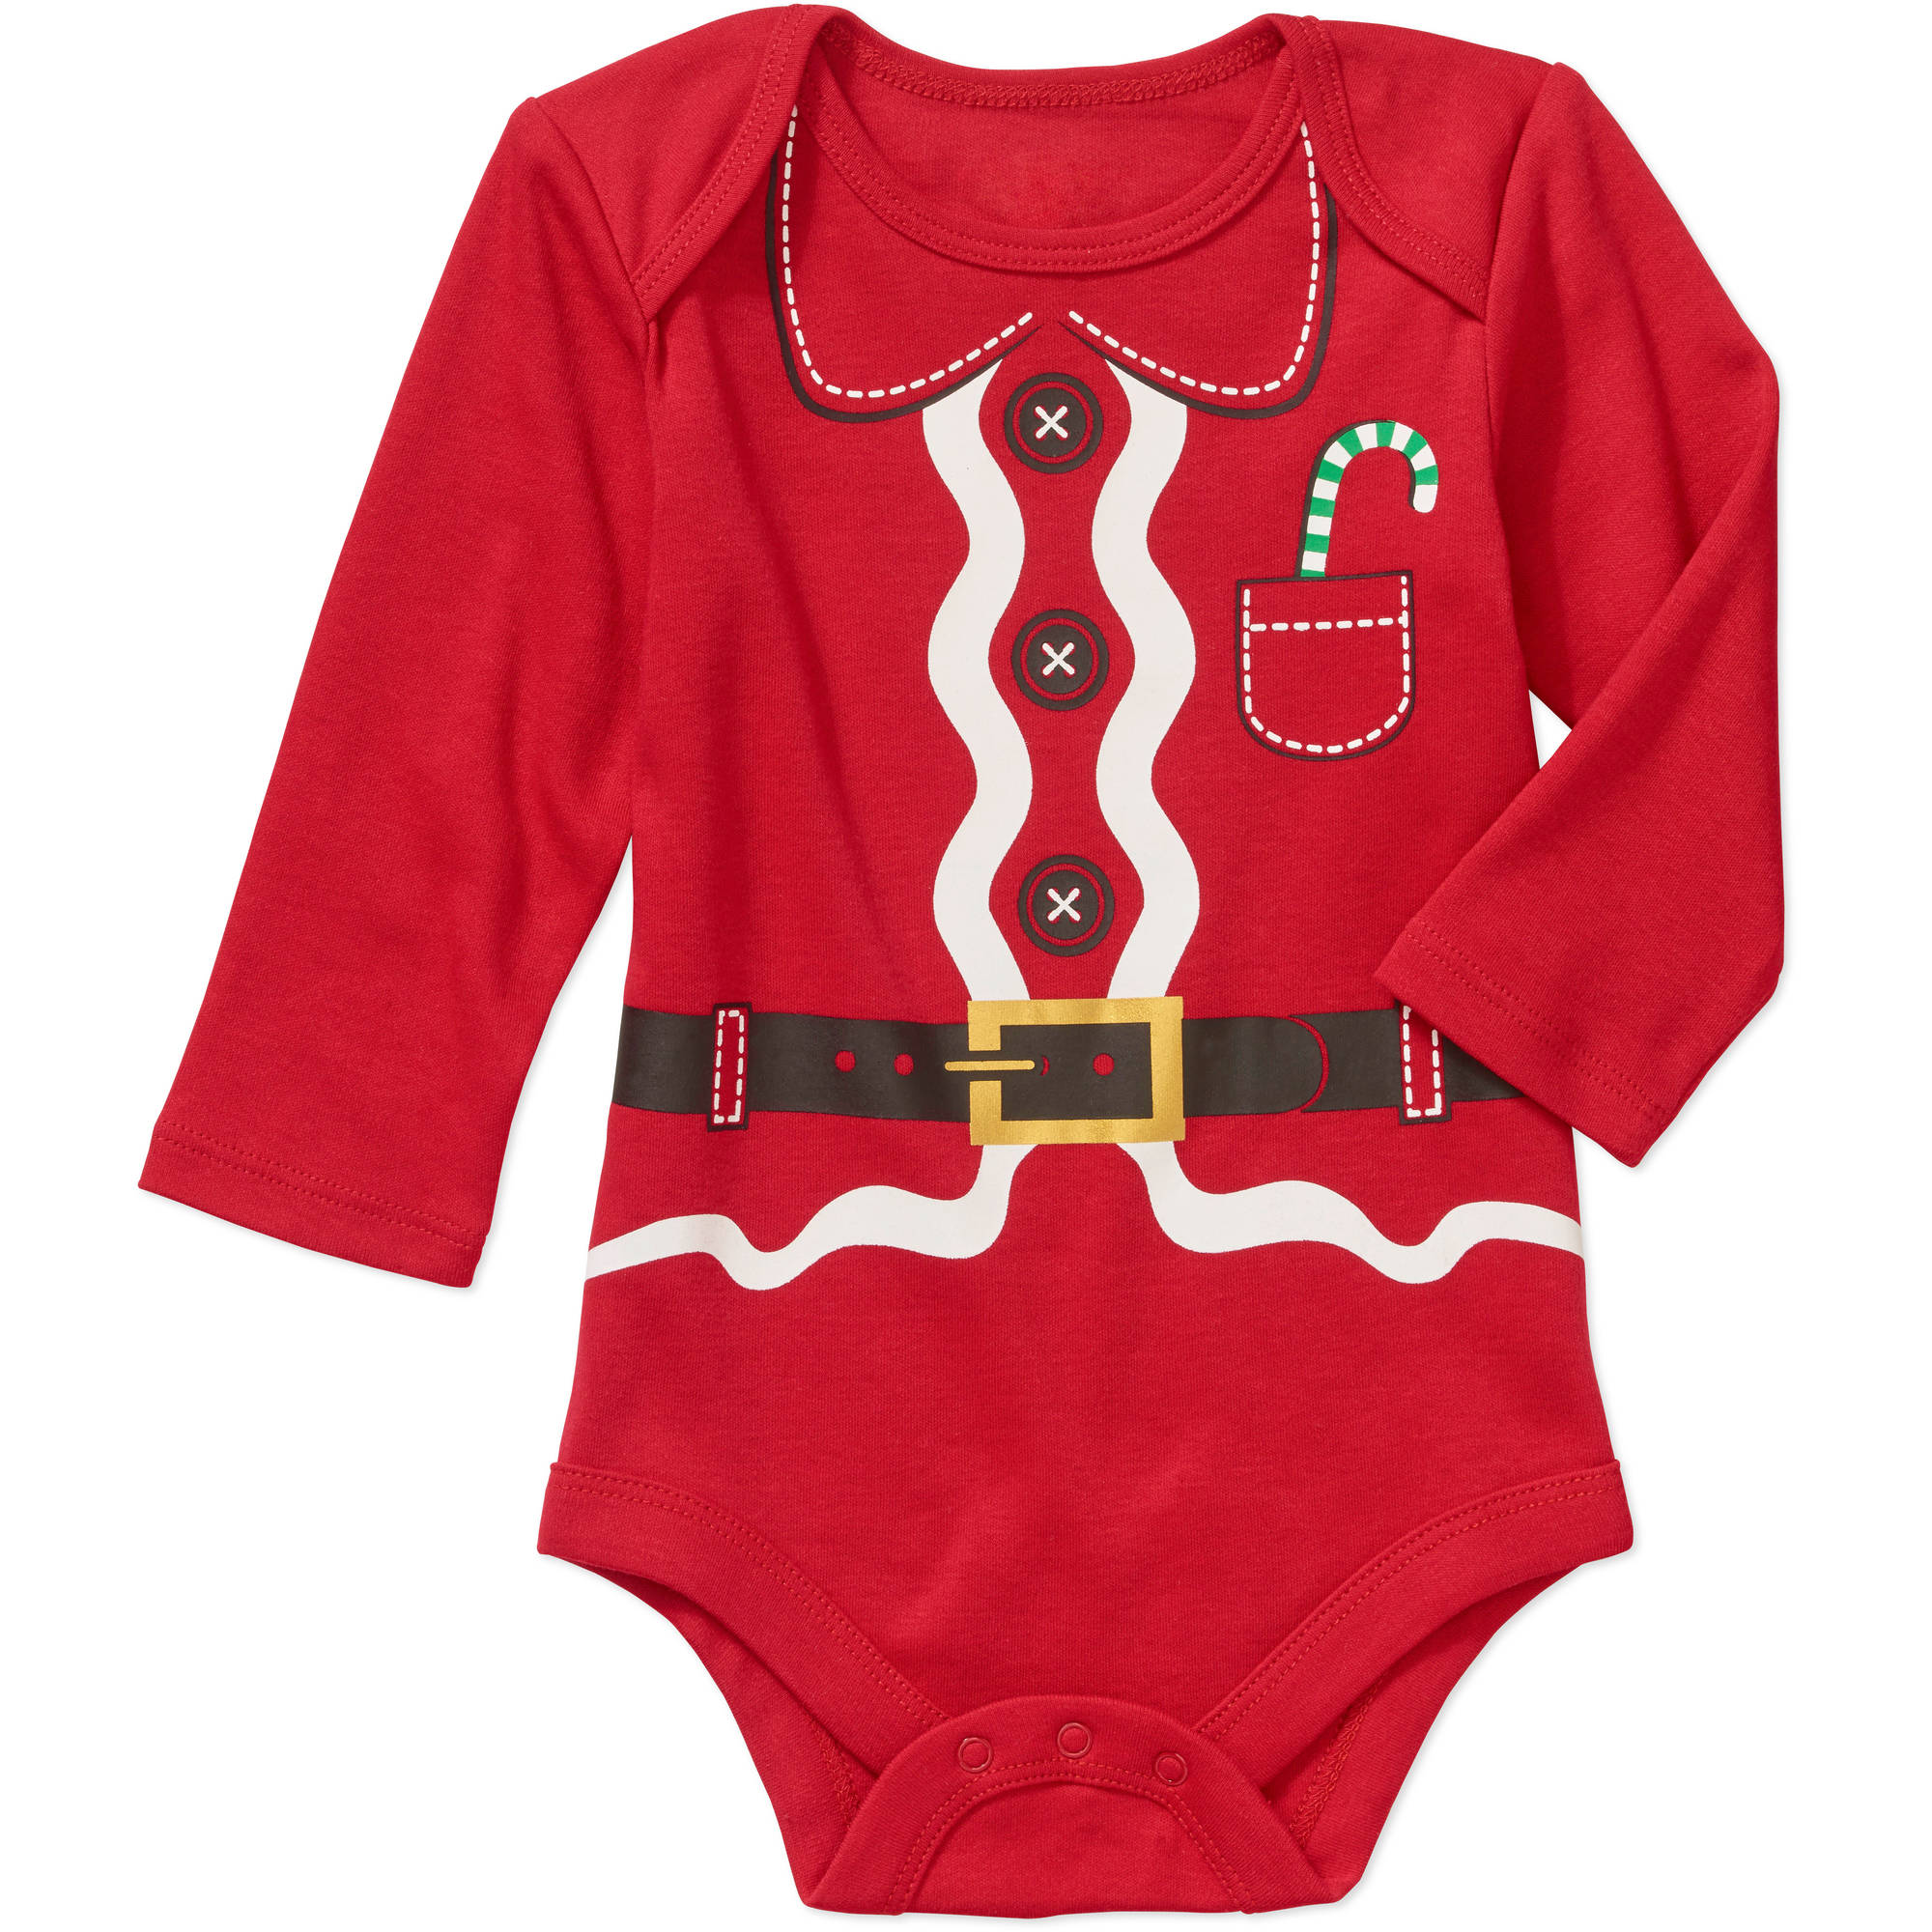 Christmas Newborn Baby Boy Up All Night and Santa Suit Seasonal Bodysuit 2 pack